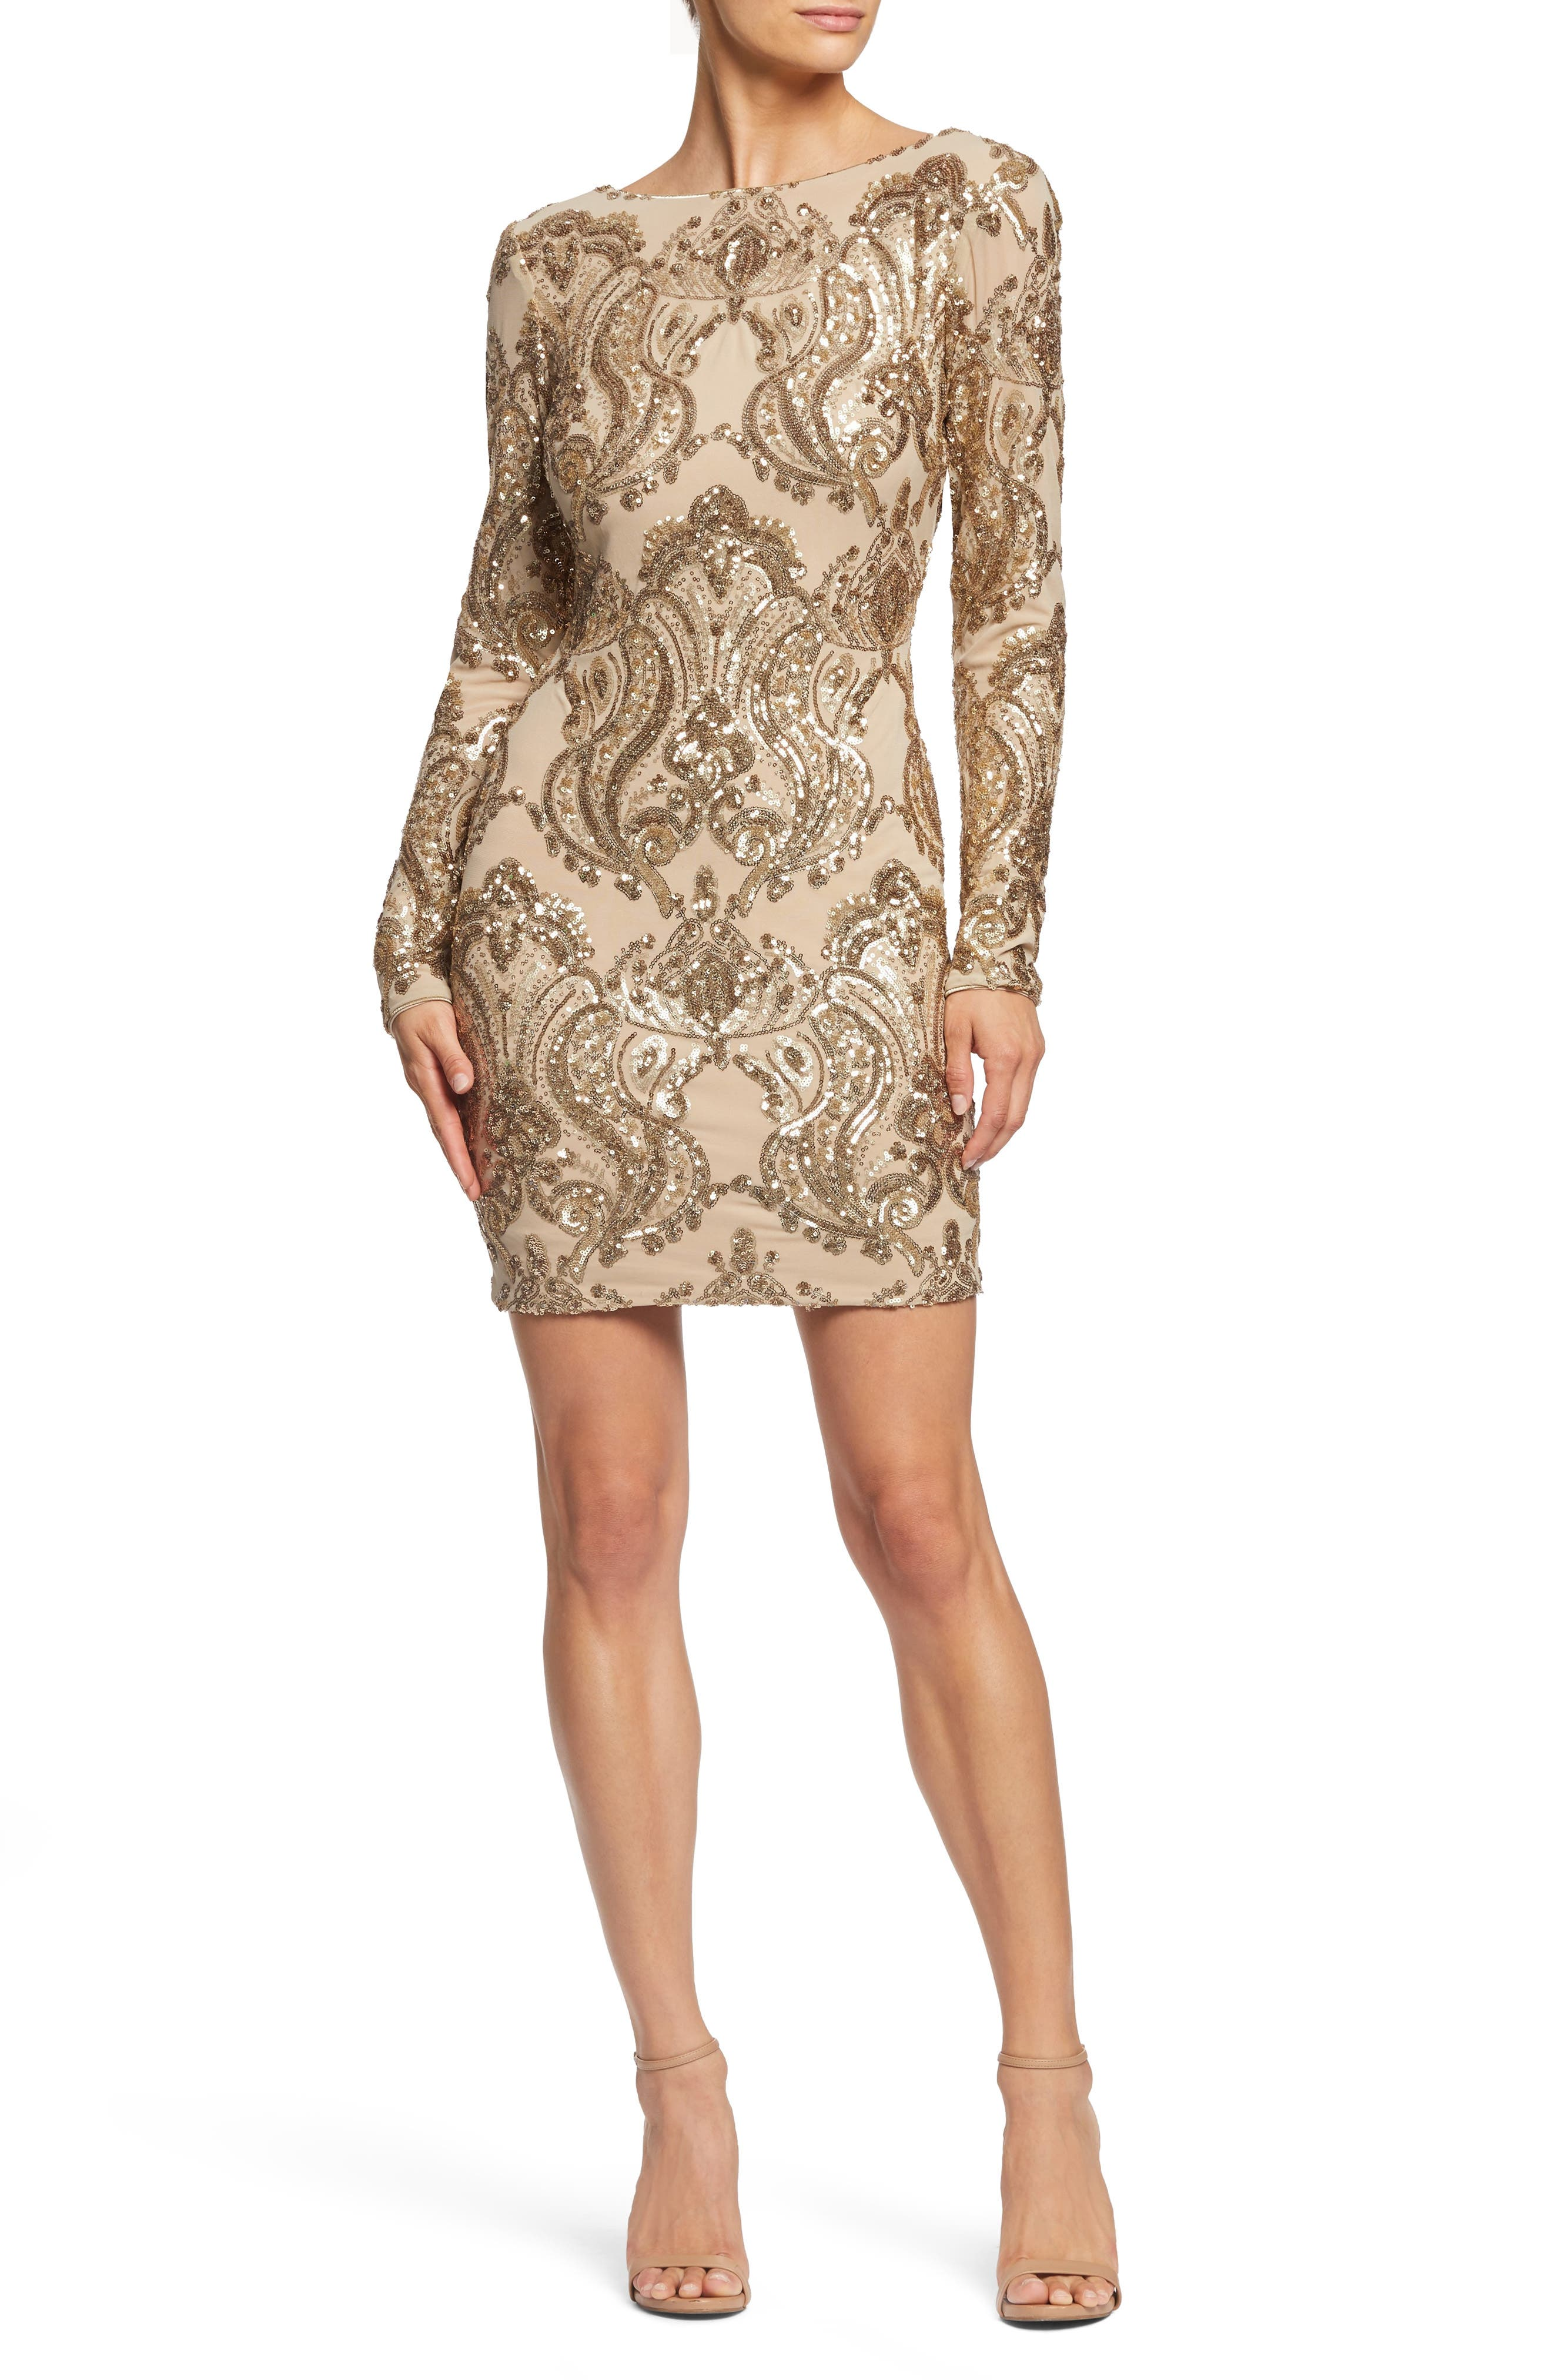 DRESS THE POPULATION Lola Sequin Body-Con Dress, Main, color, NUDE/ GOLD